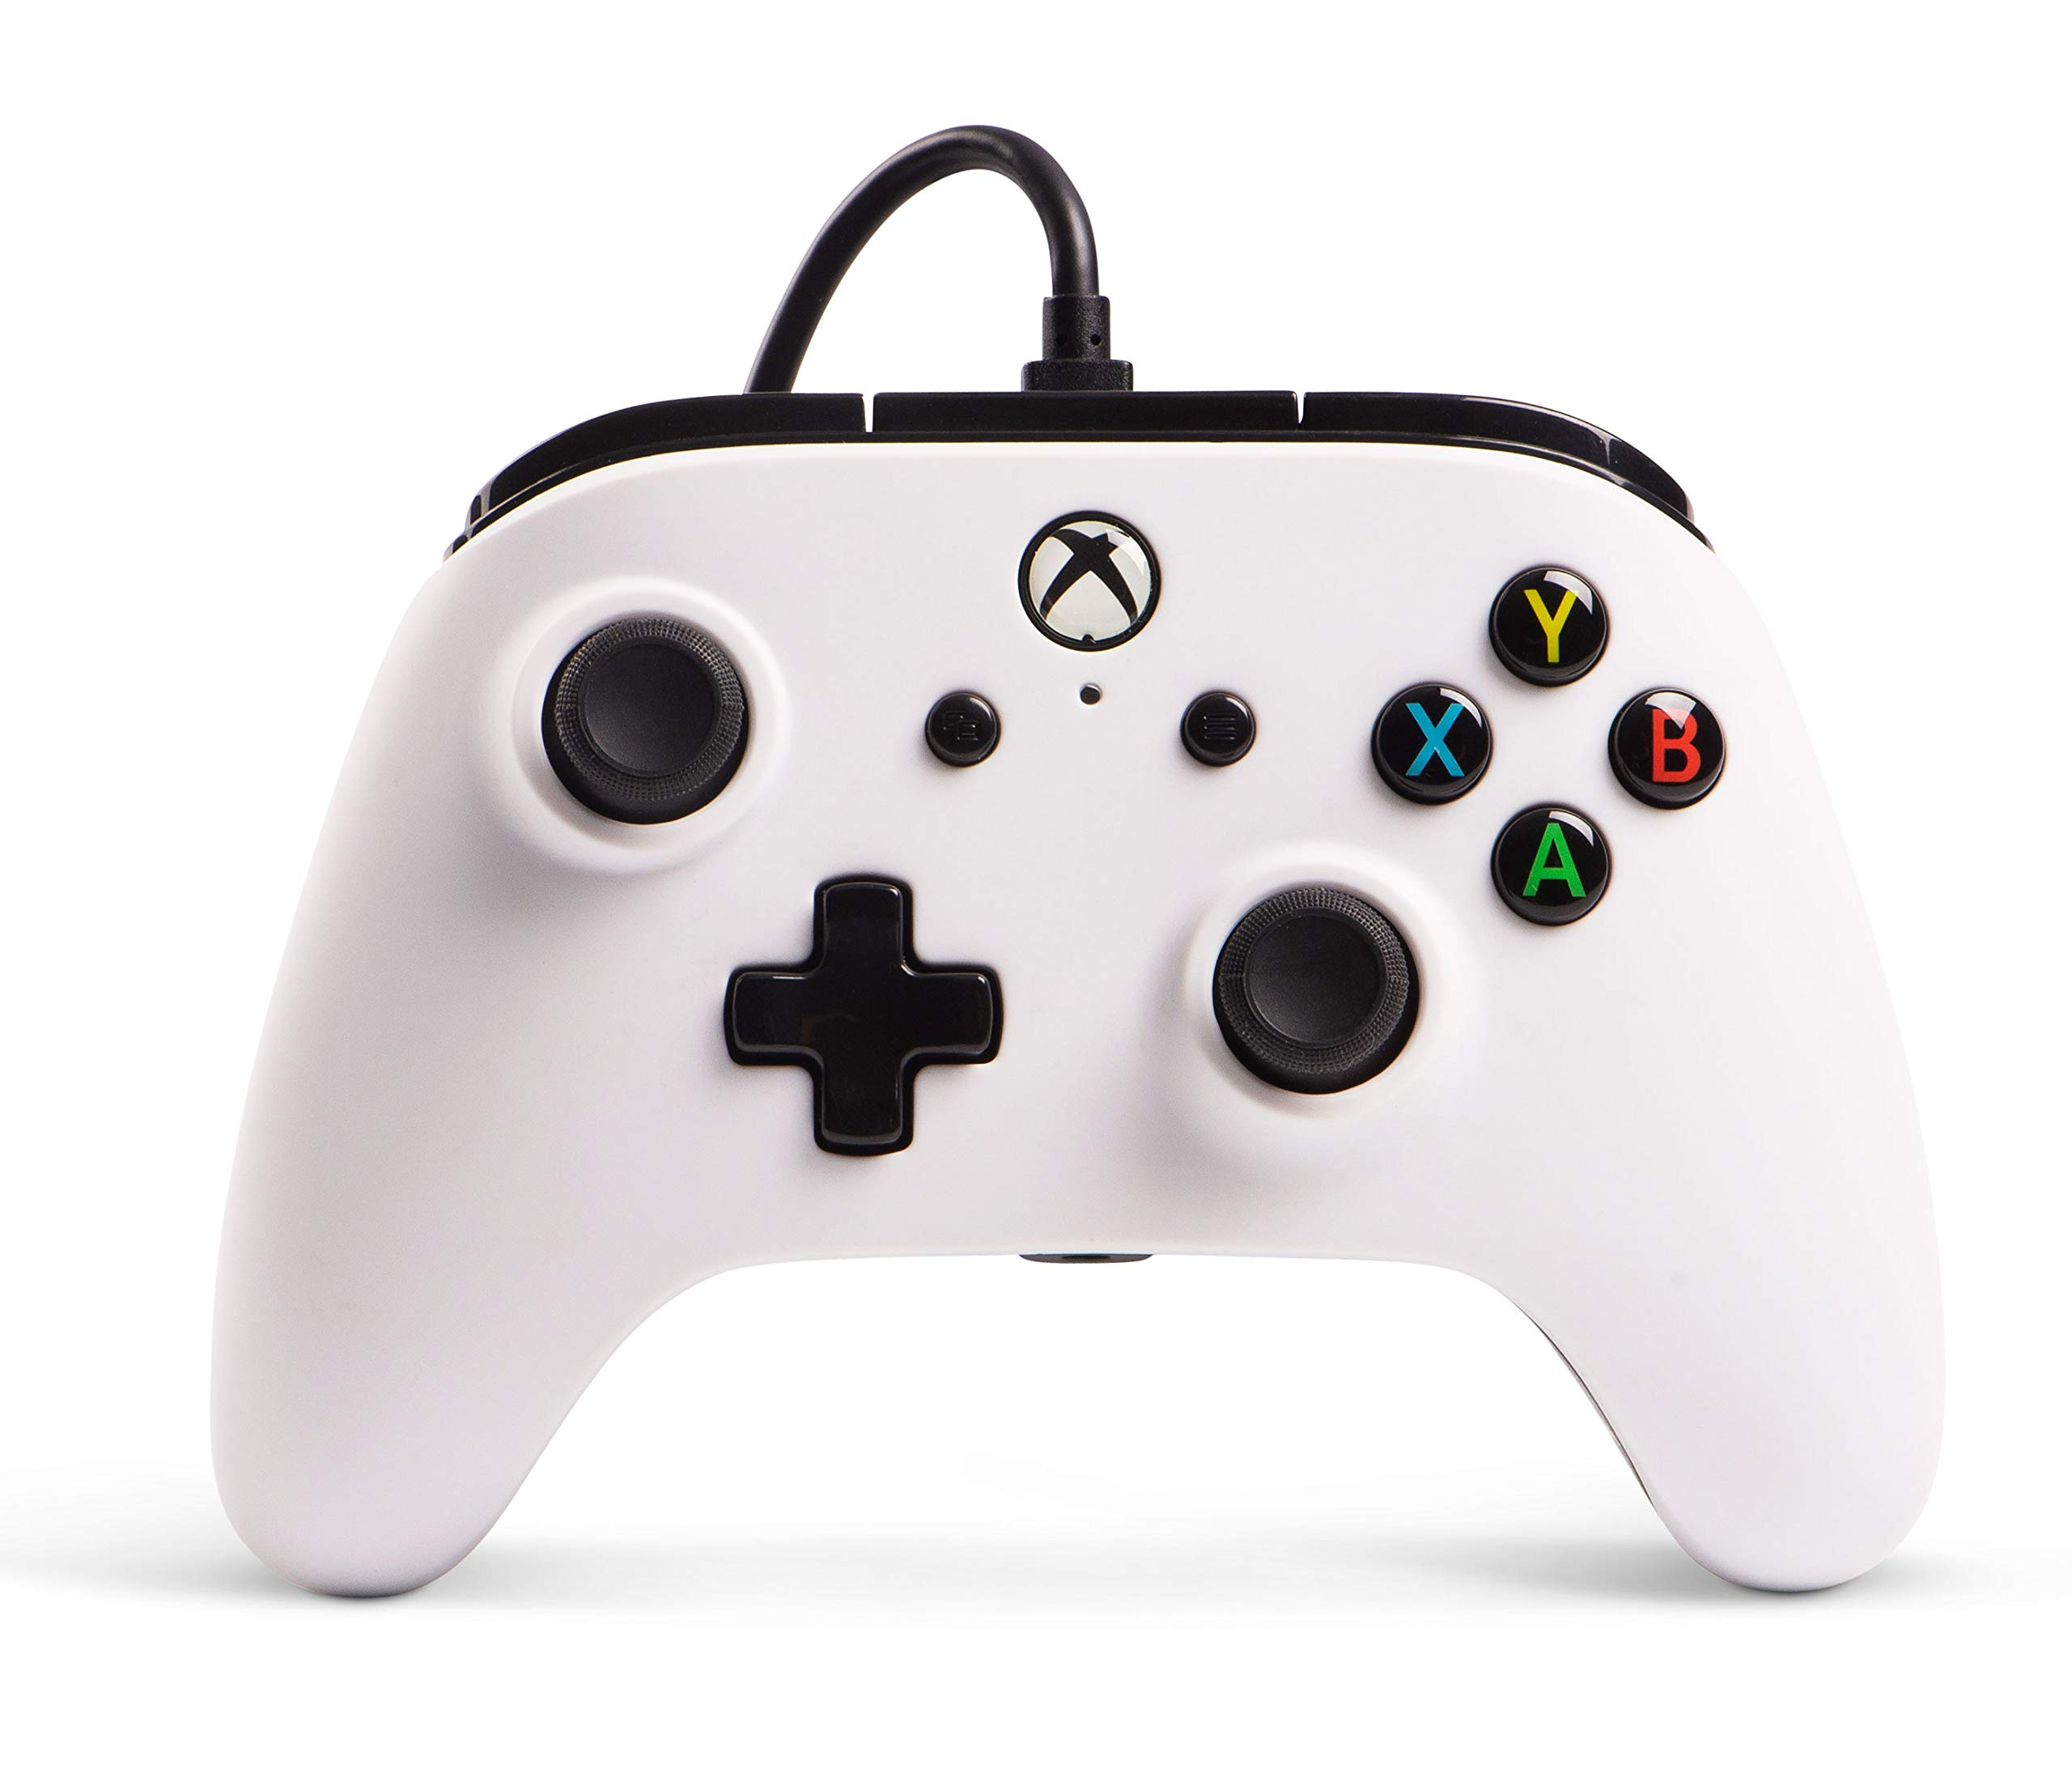 Controlador PowerA Wired con licencia oficial para  Xbox One, Xbox One S, Xbox One X und Windows 10 – Blanco